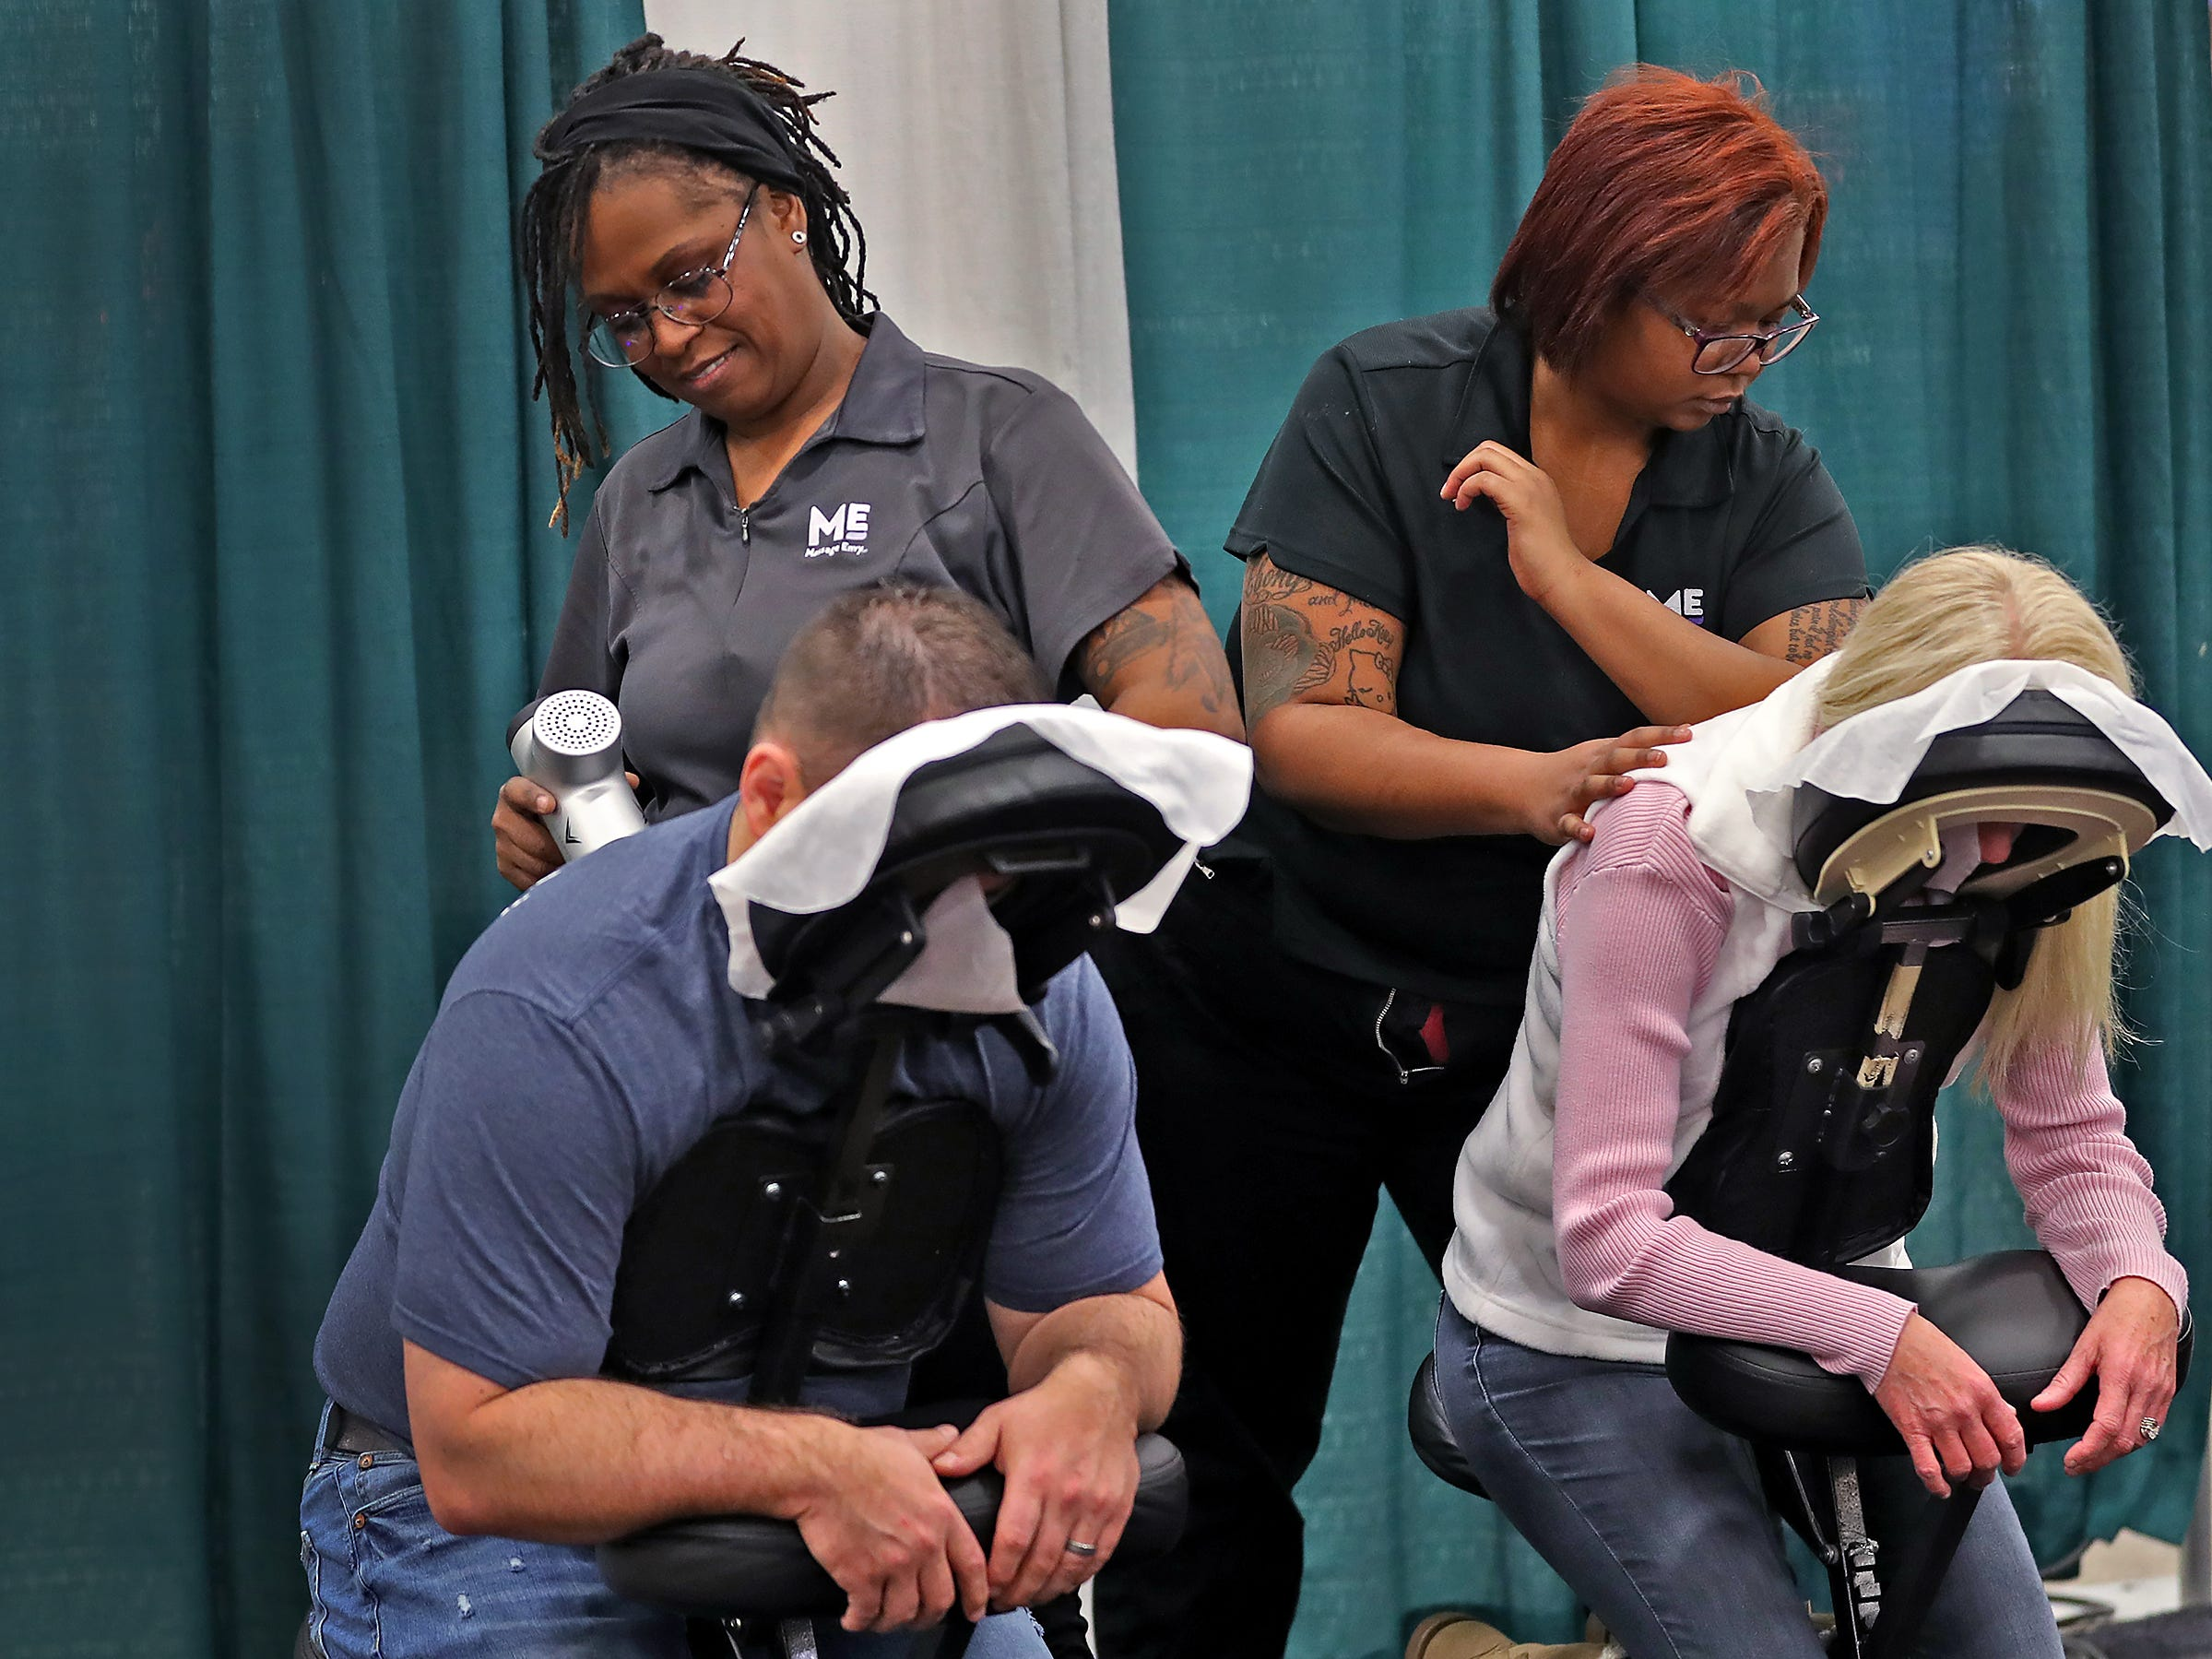 John Chladny gets massaged by Shyra Cobb, left, and Sheryl Messer is massaged by Ebony Greenwade, right, at the Massage Envy booth, during the Indy Golf Expo at the Indiana State Fairgrounds, Sunday, Jan. 20, 2019.  The company did chair and stretching massages but also offered advice on how to stretch to strengthen one's golf game.